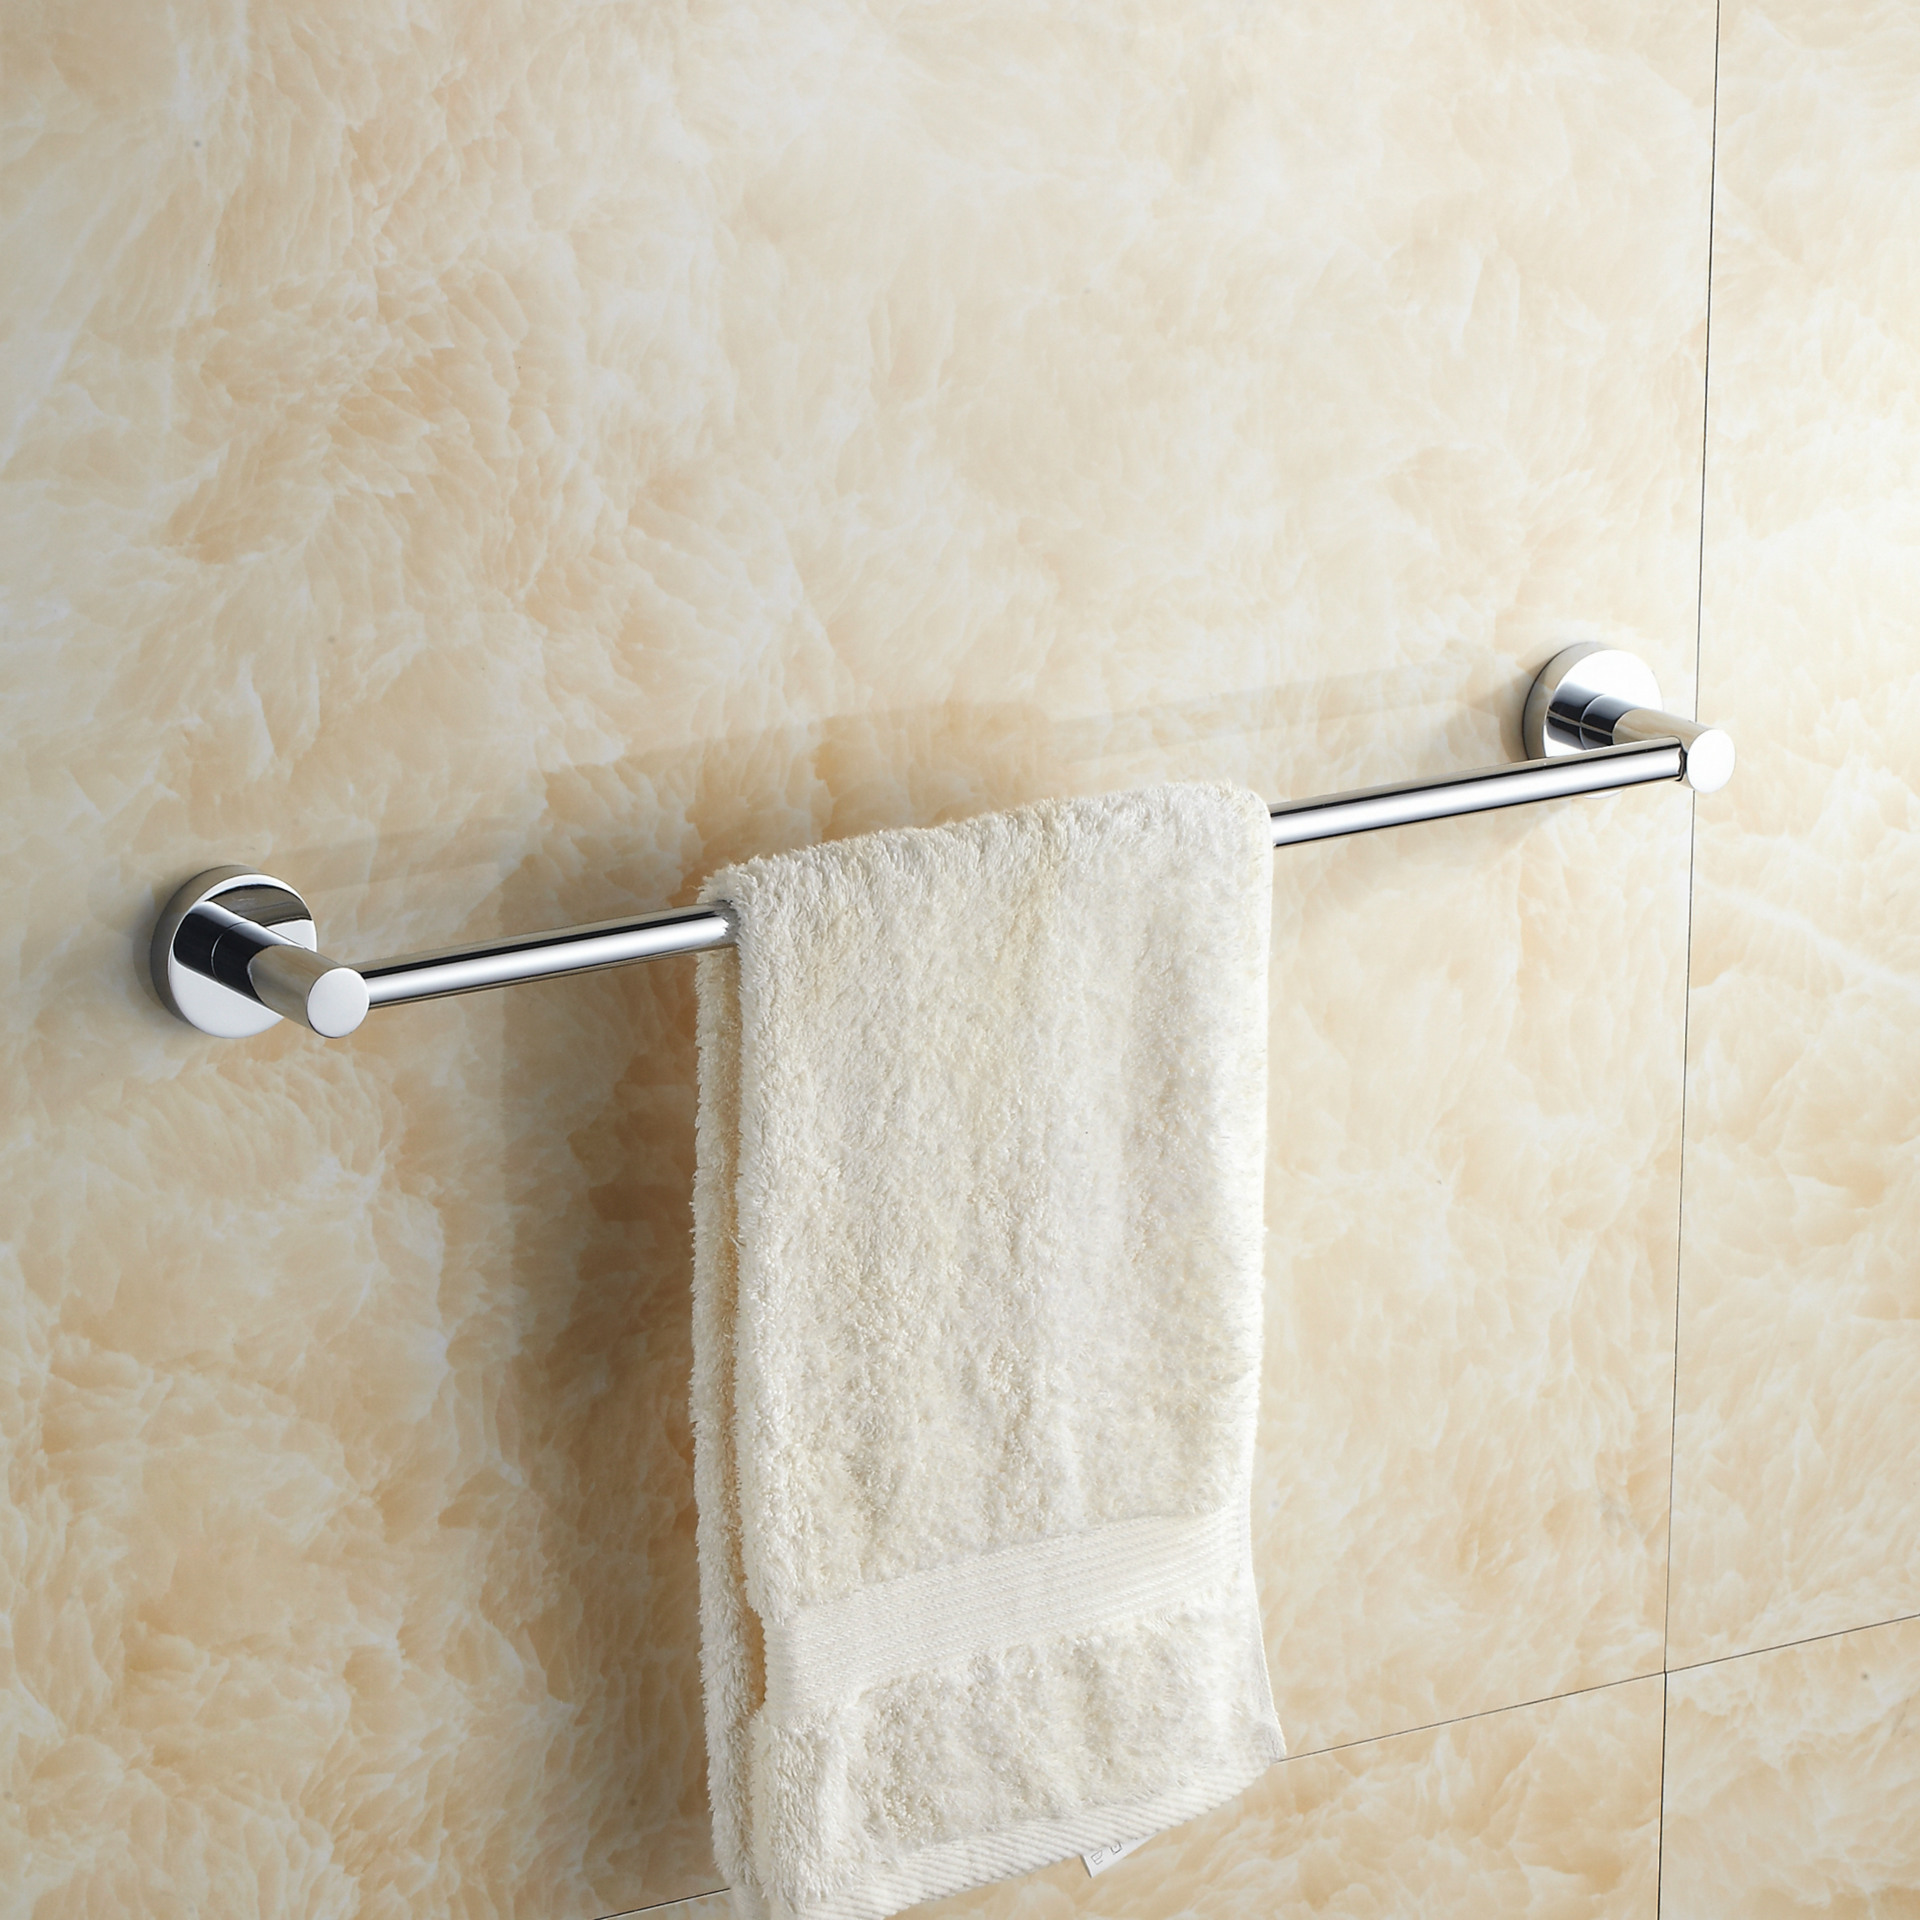 Hanging Towels In Bathroom 28 Images Where To Hang Towels In Small Bathroom 28 Images Diy